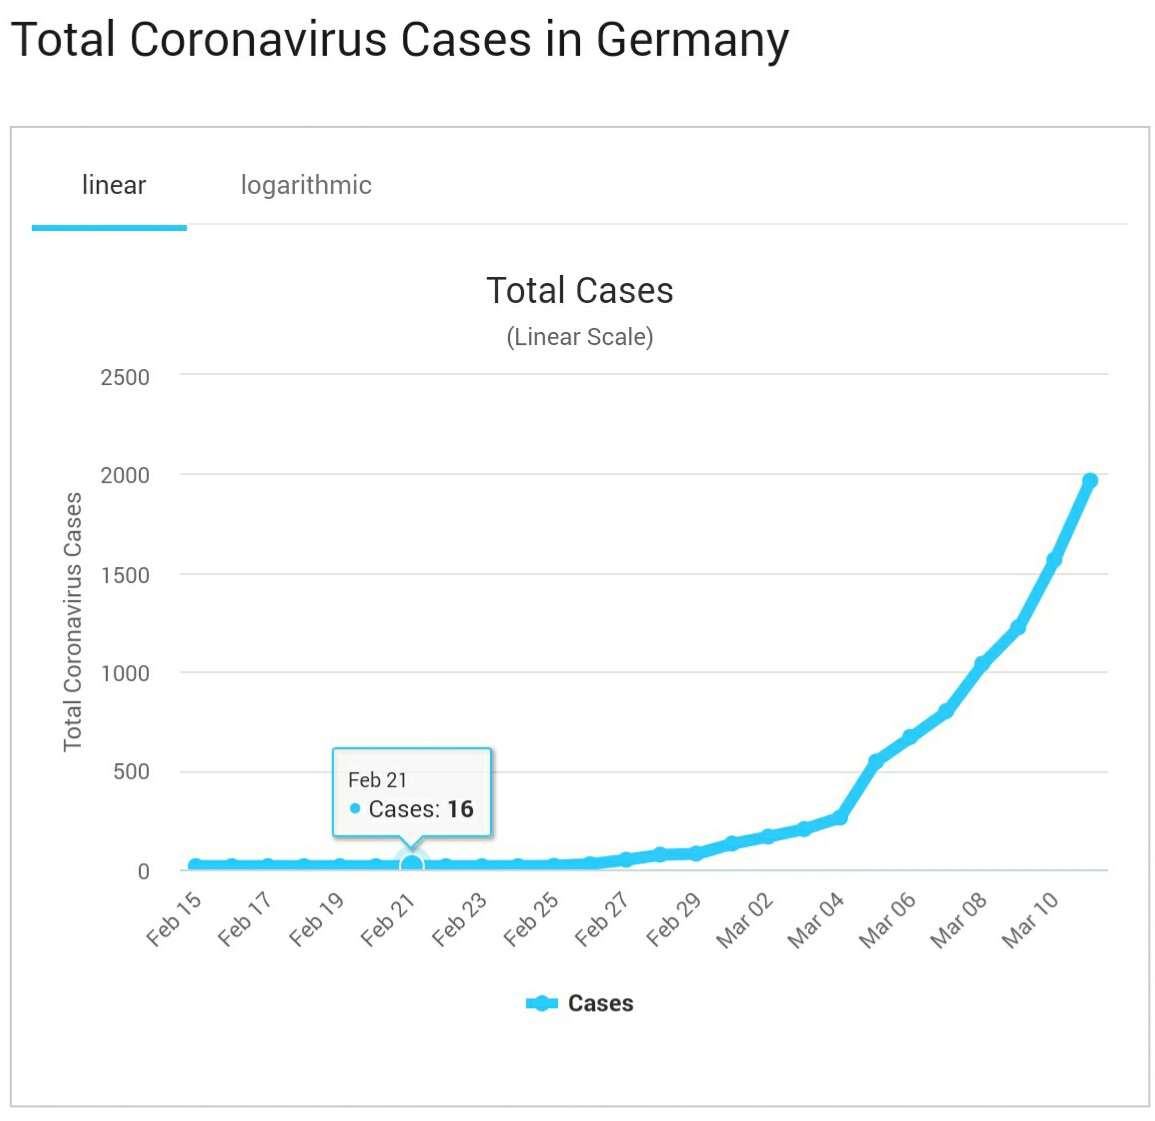 Covid-19 virus day by day chart? - Travel Stack Exchange